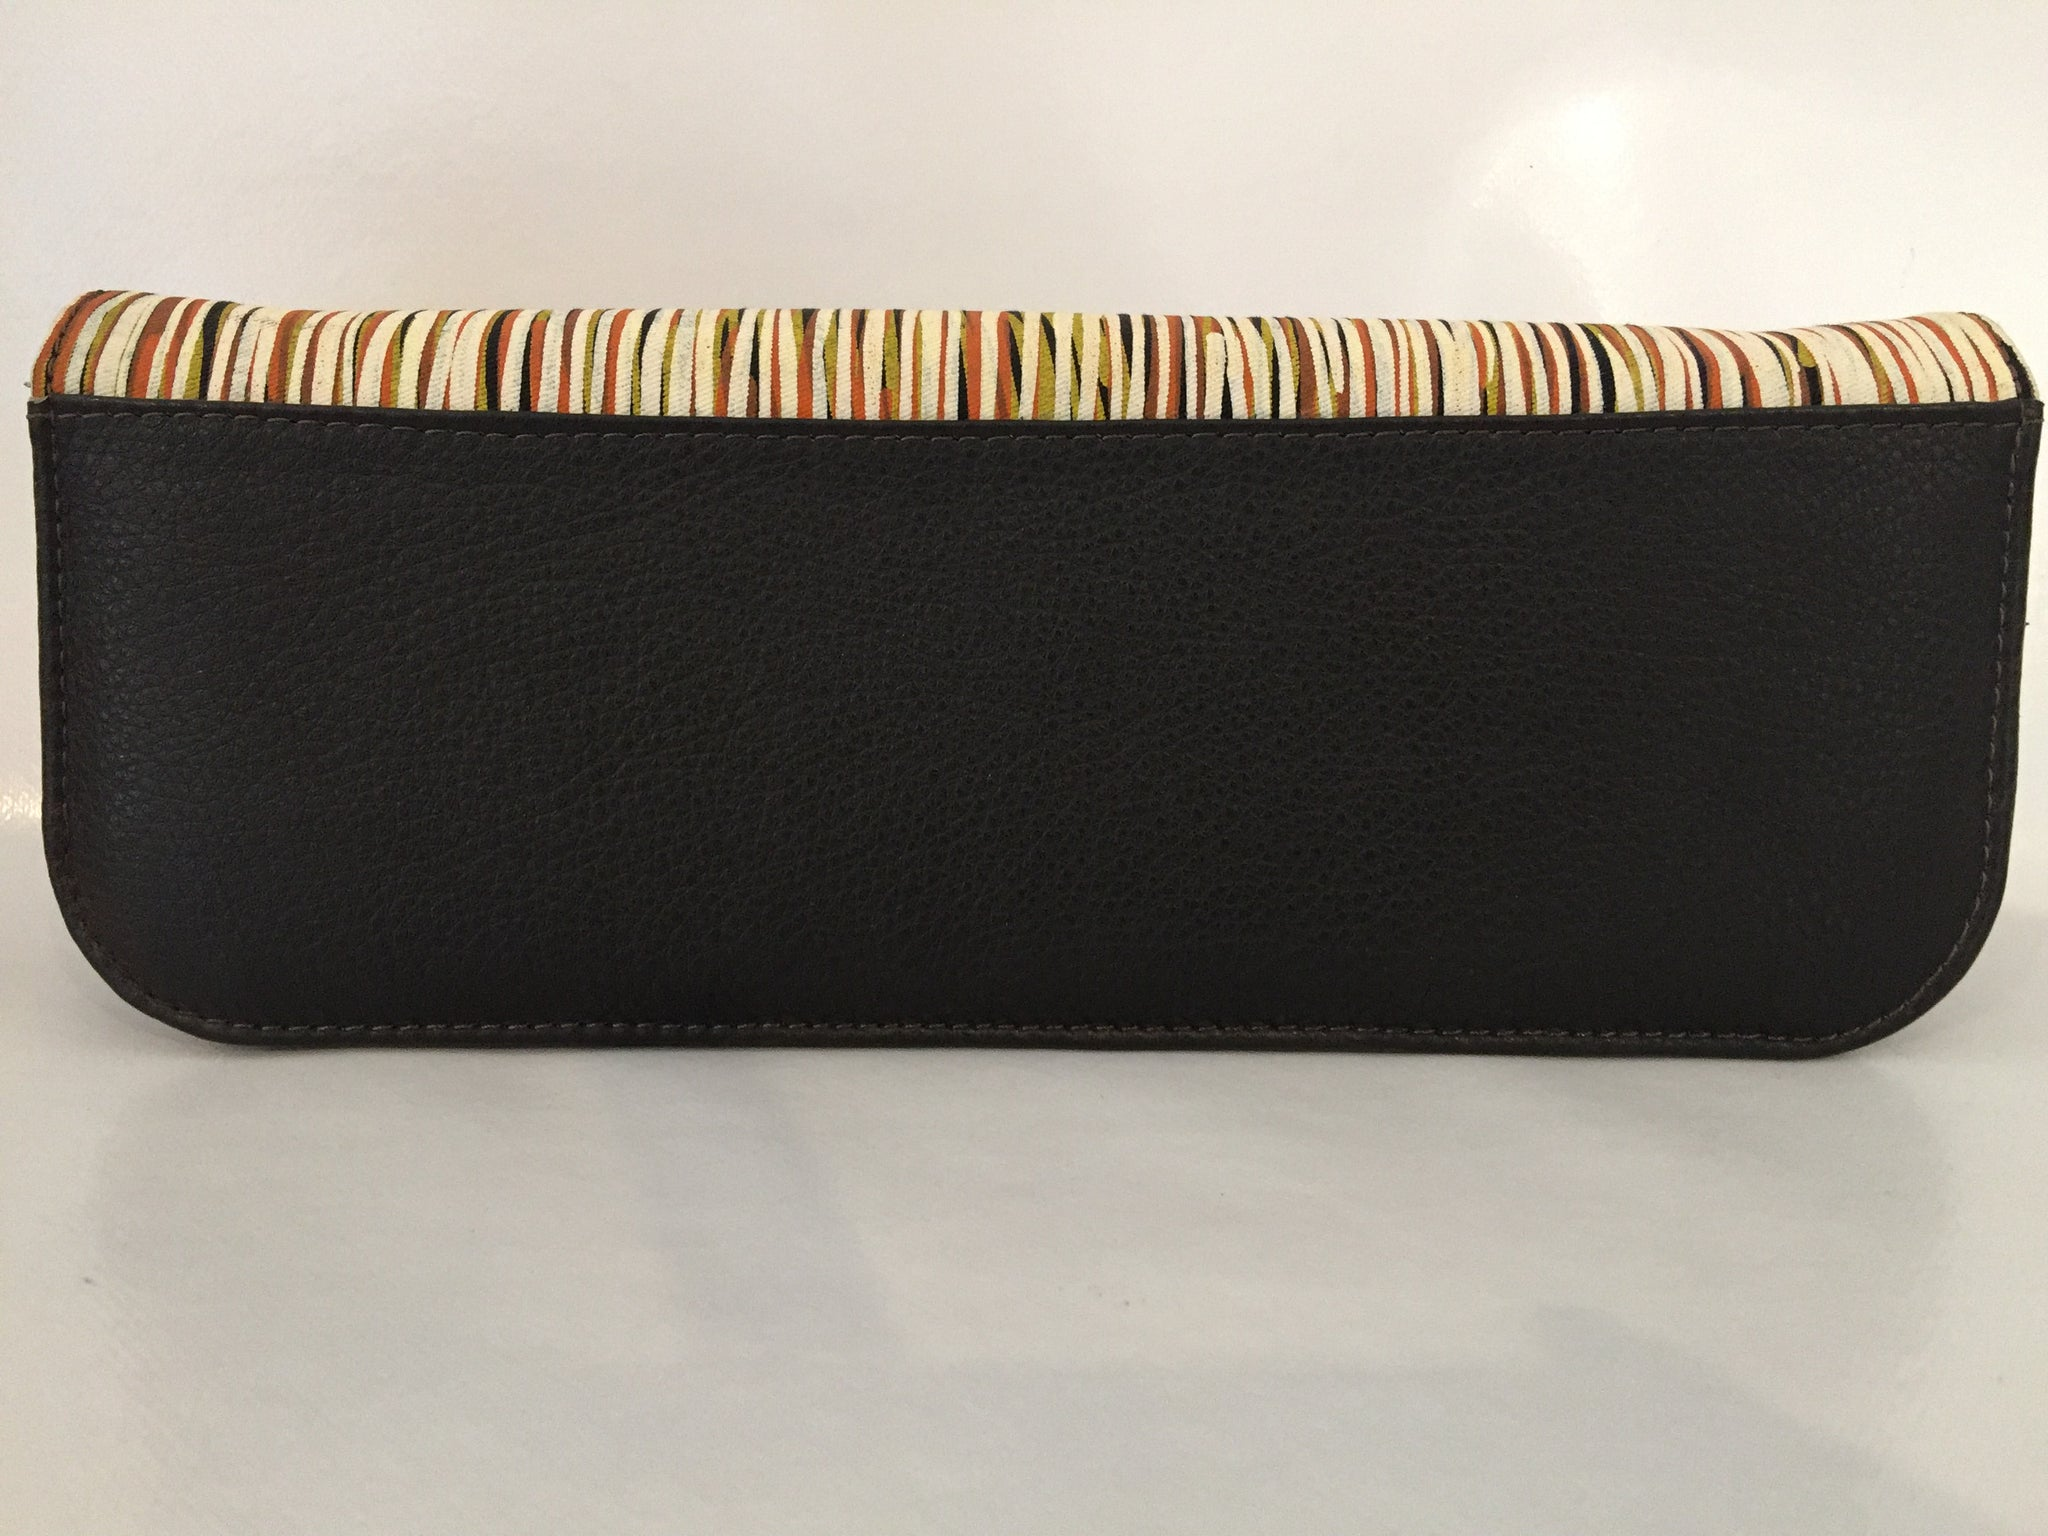 Ebony Clutch in brown leather featuring Yerrgi by artist Kieren (Karritpul) McTaggart, Merrepen Arts